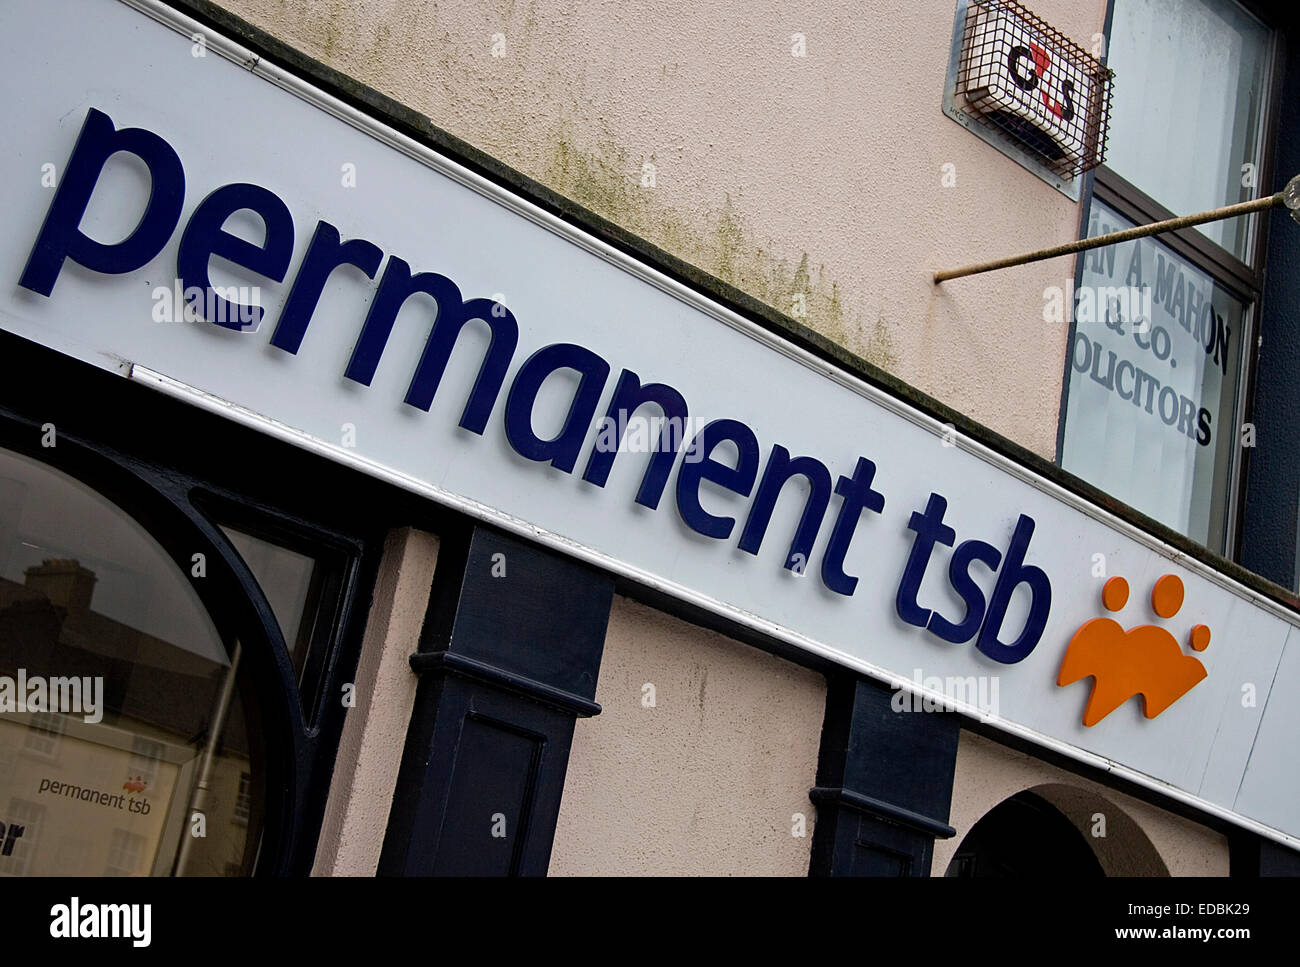 A Branch of Permanent TSB Bank, Roscommon, West of Ireland. - Stock Image